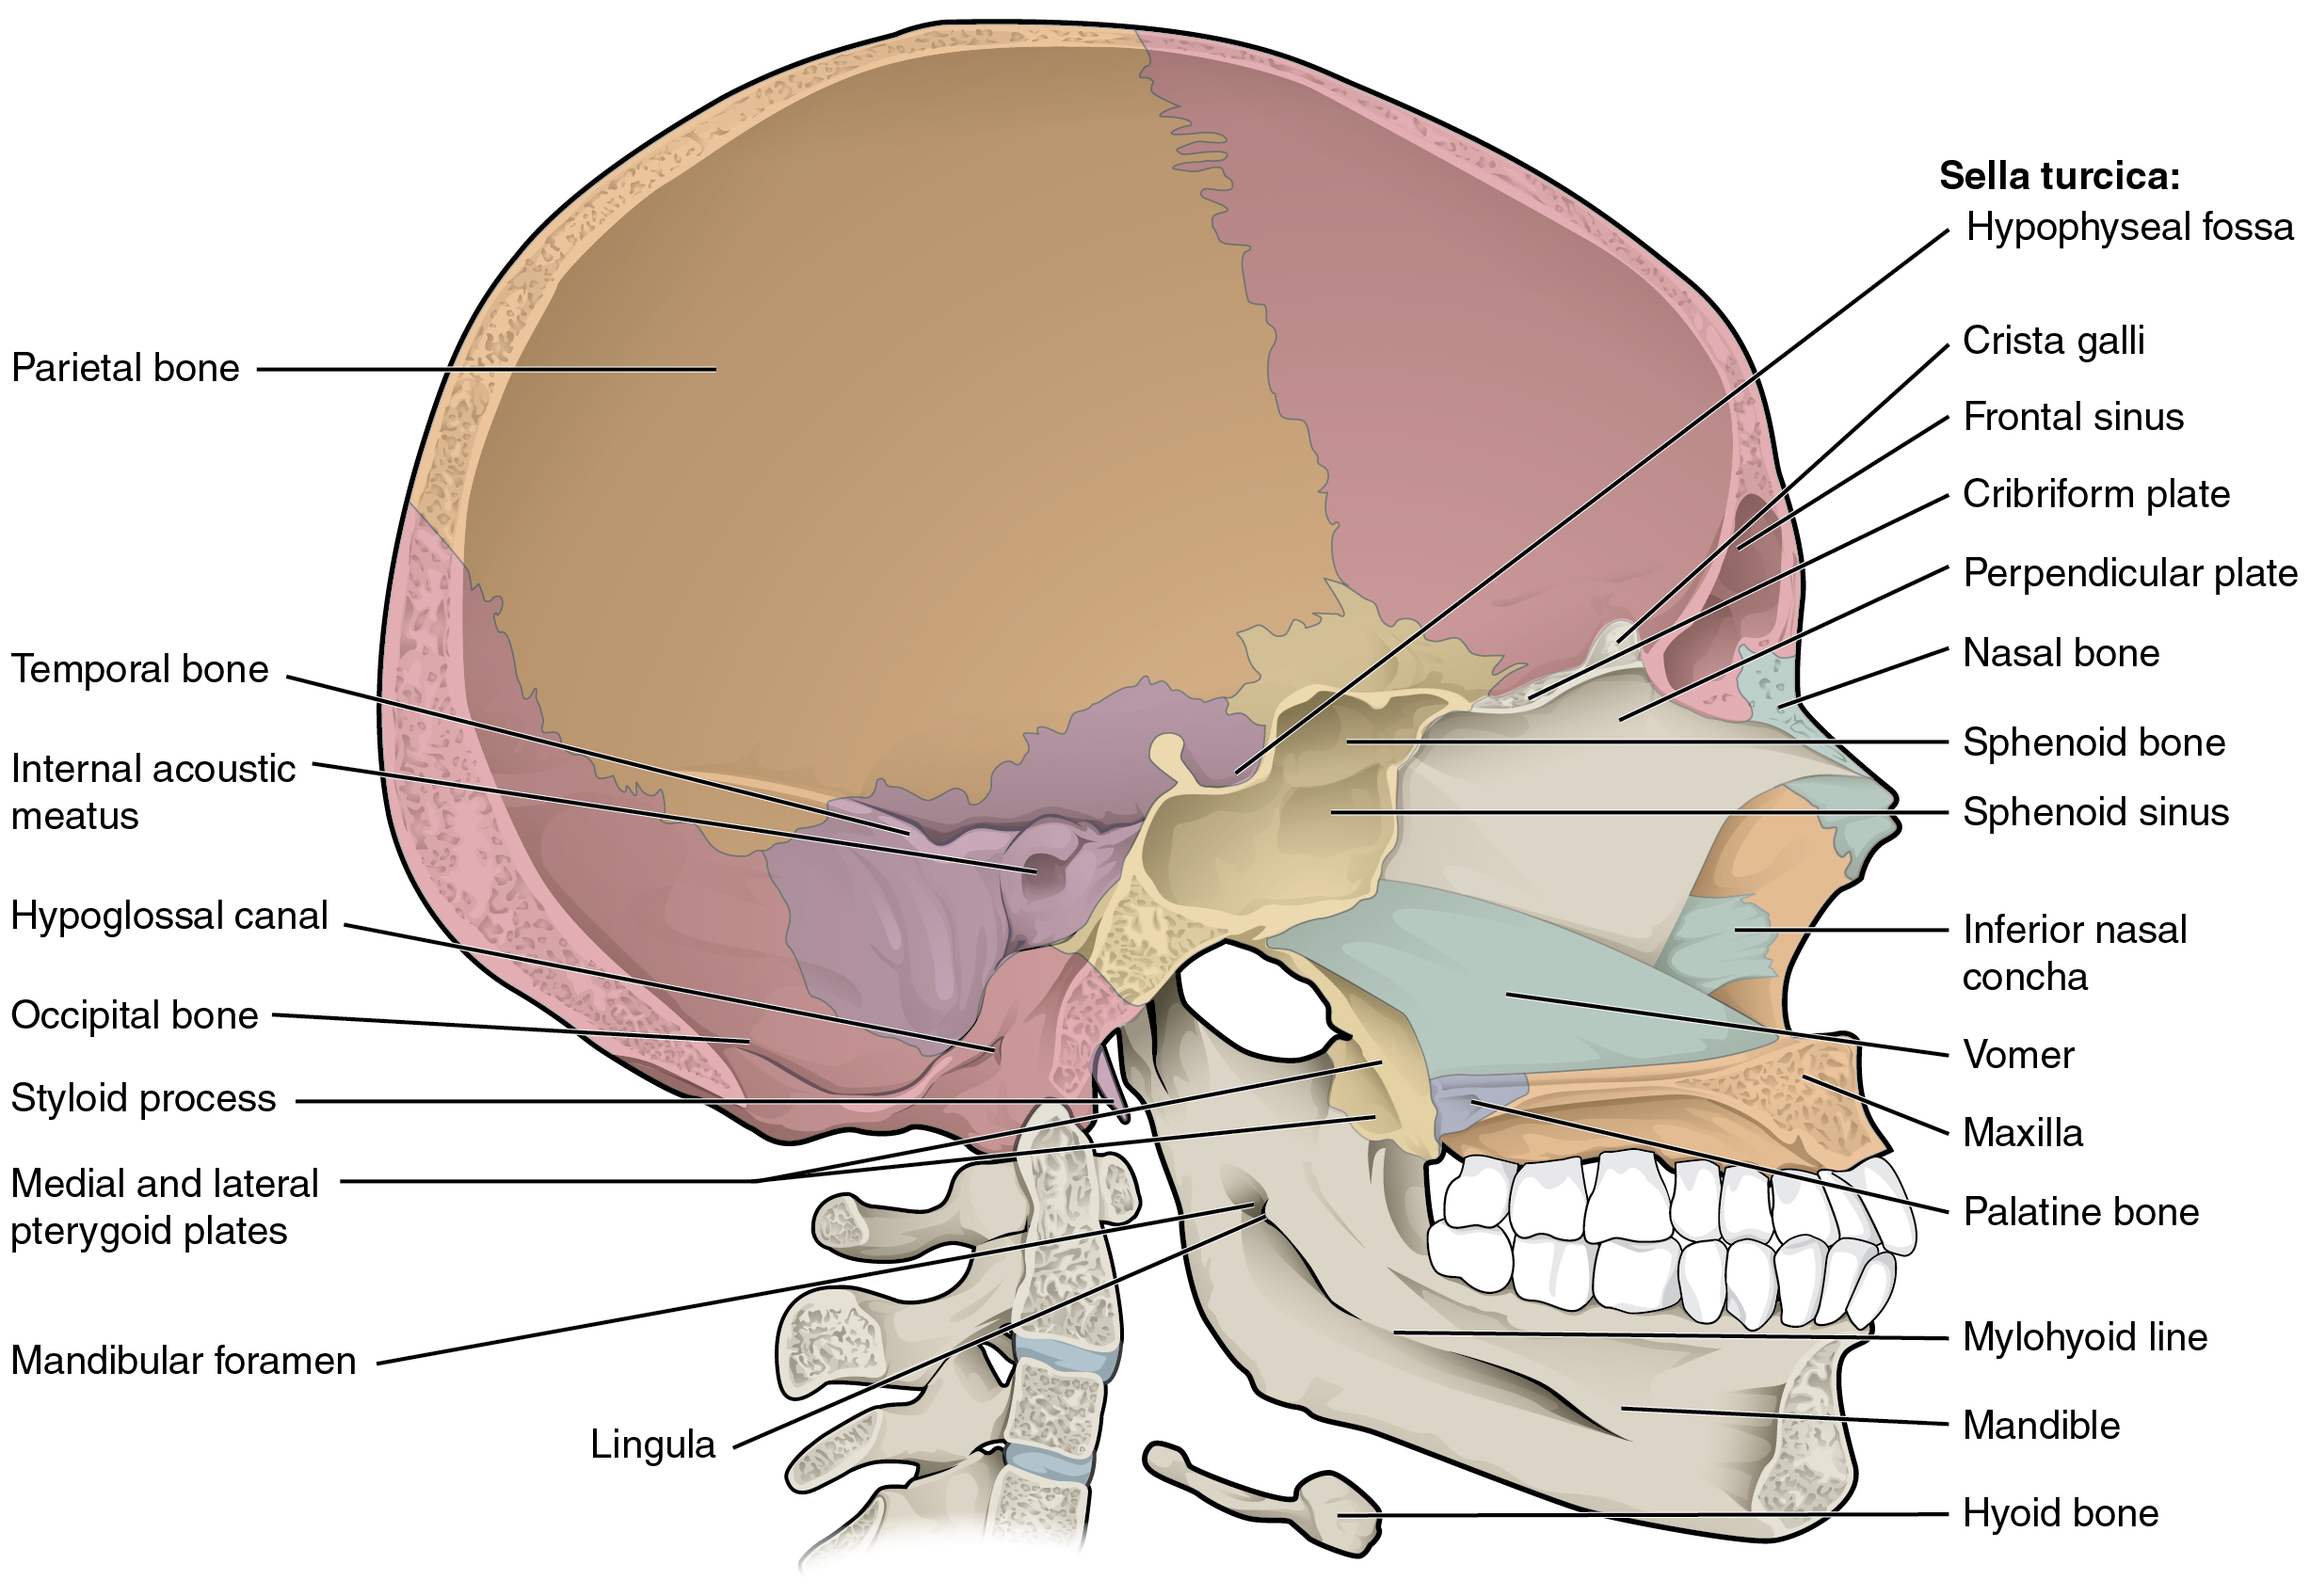 This Diagram Shows The Sagittal Section Of The Skull And